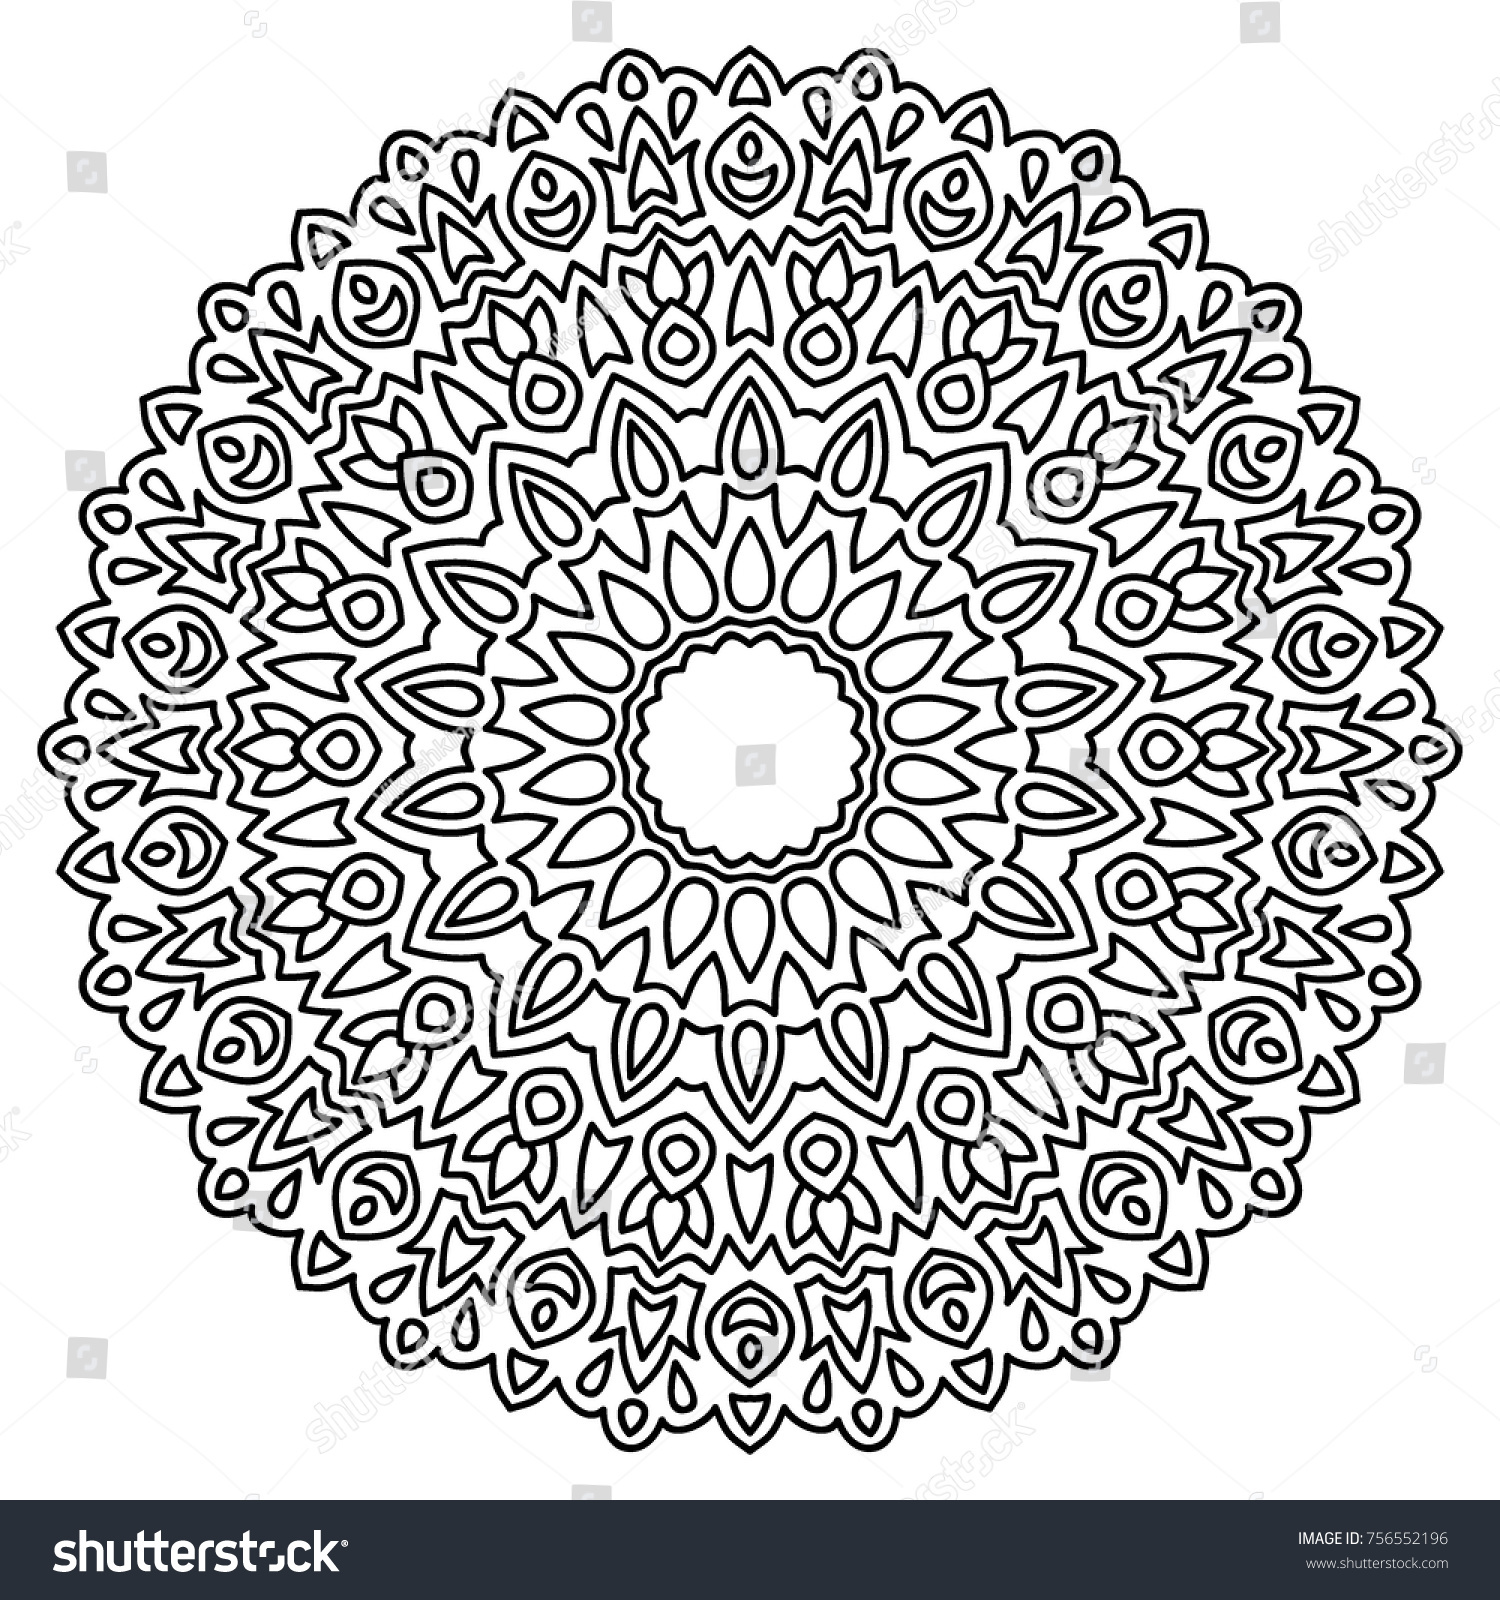 Delicate Snowflake Adult Coloring Book Page Stock Vector 756552196 ...